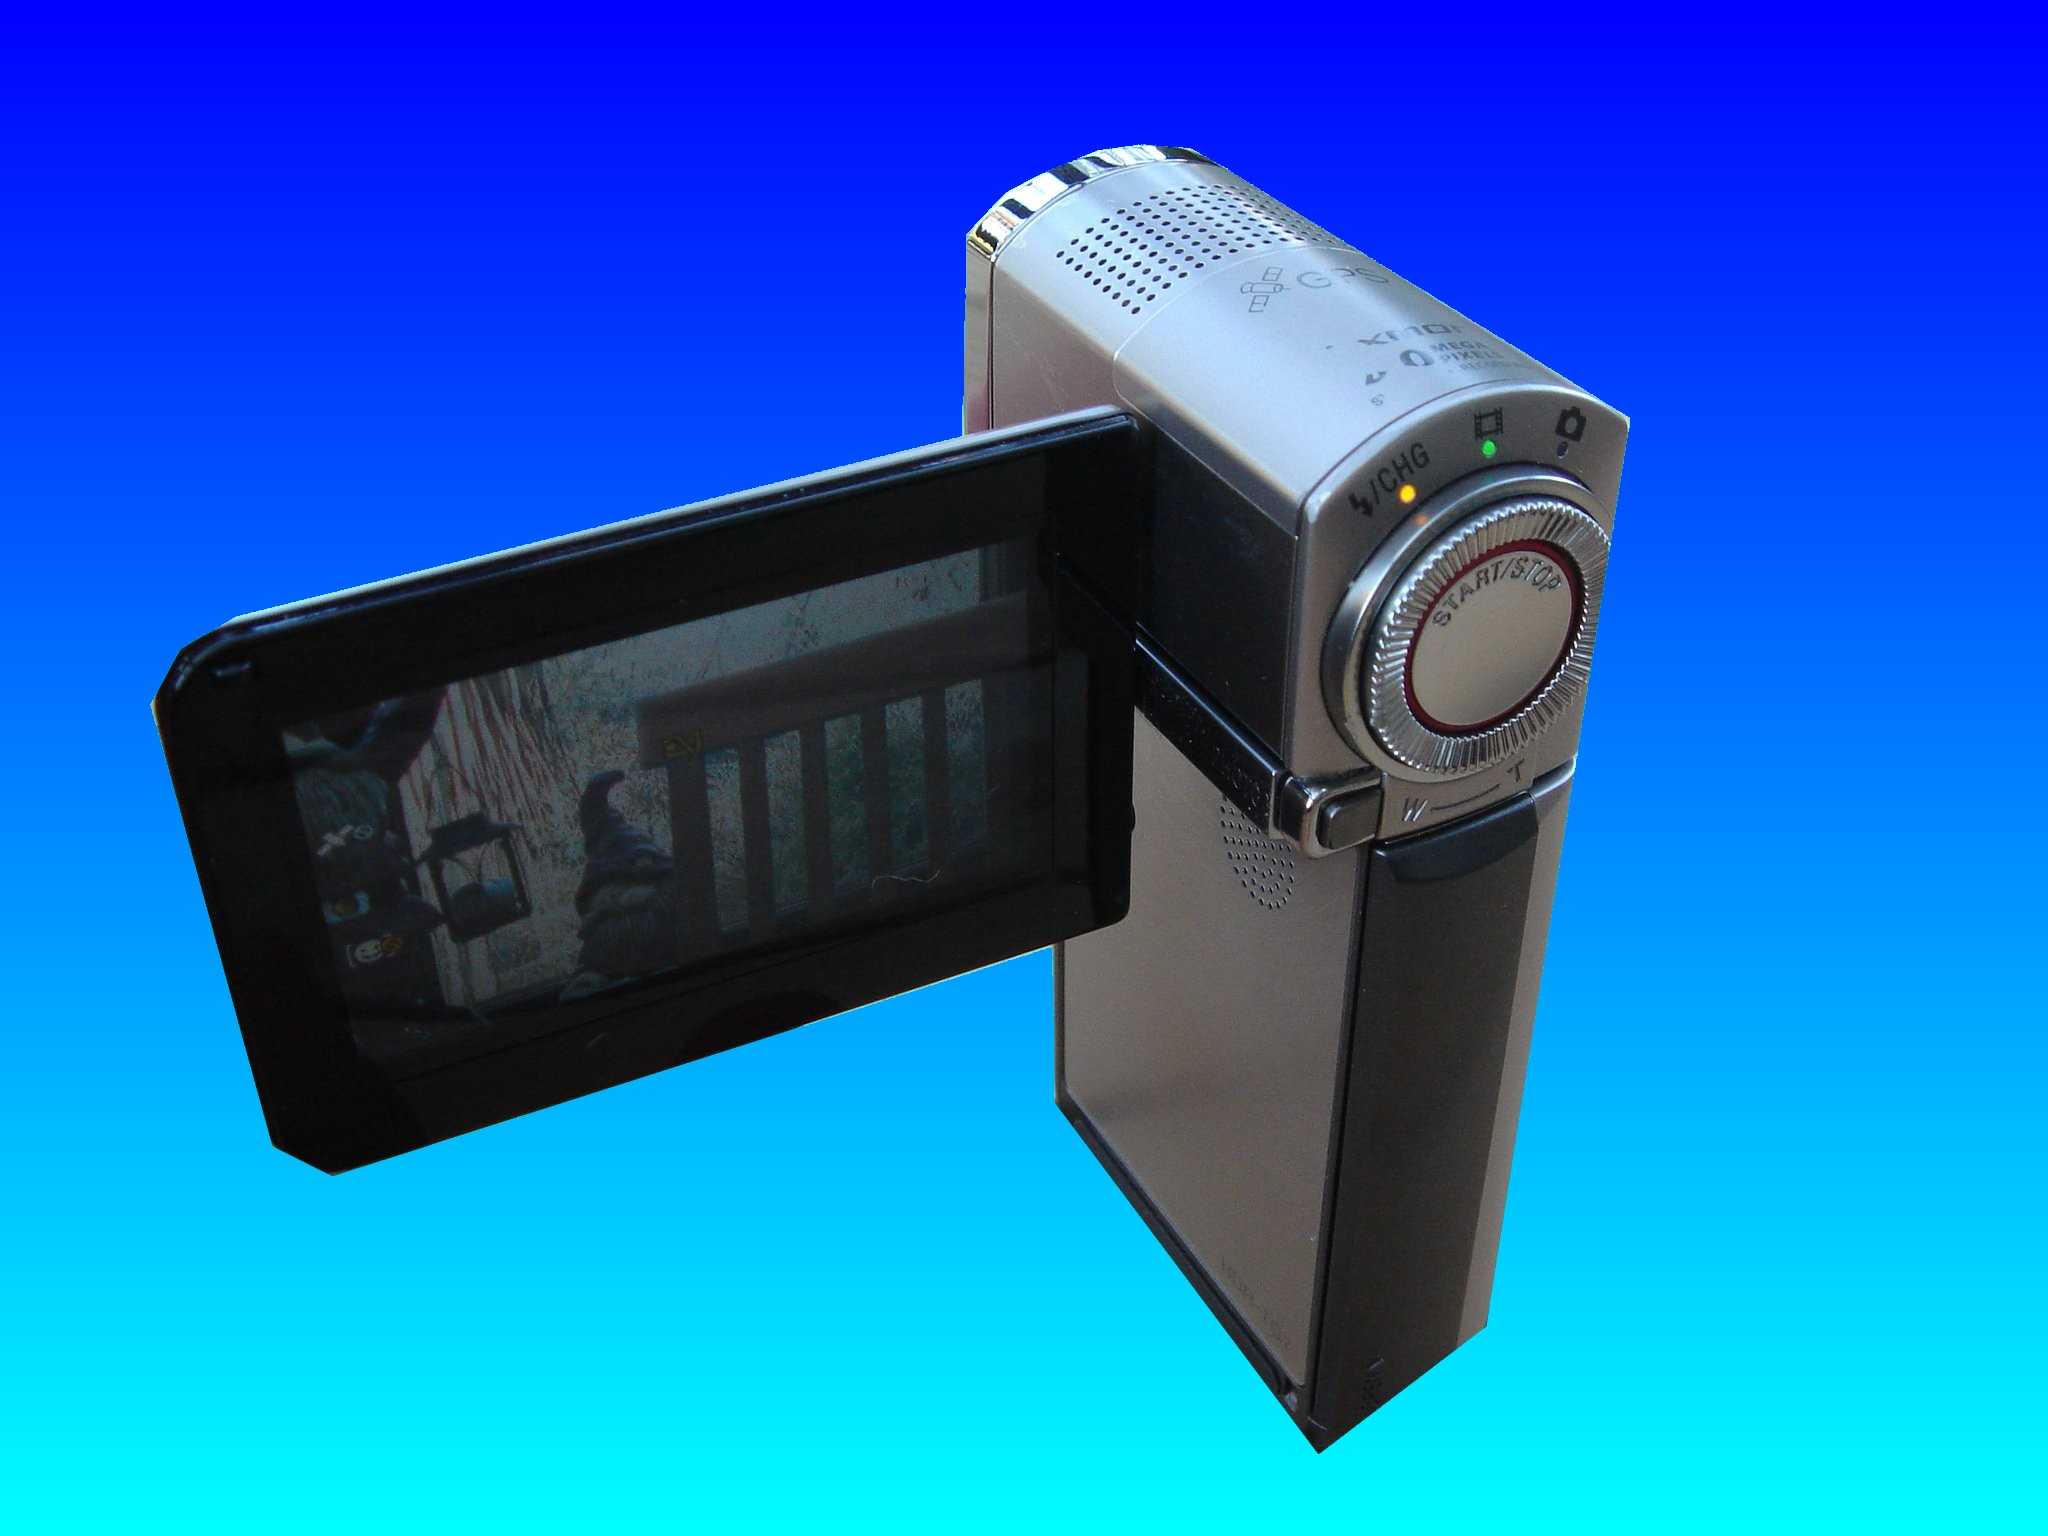 A Sony HDR-TG7VE that had its video deleted from the internal memory disk. We recovered the AVCHD video to a USB drive.